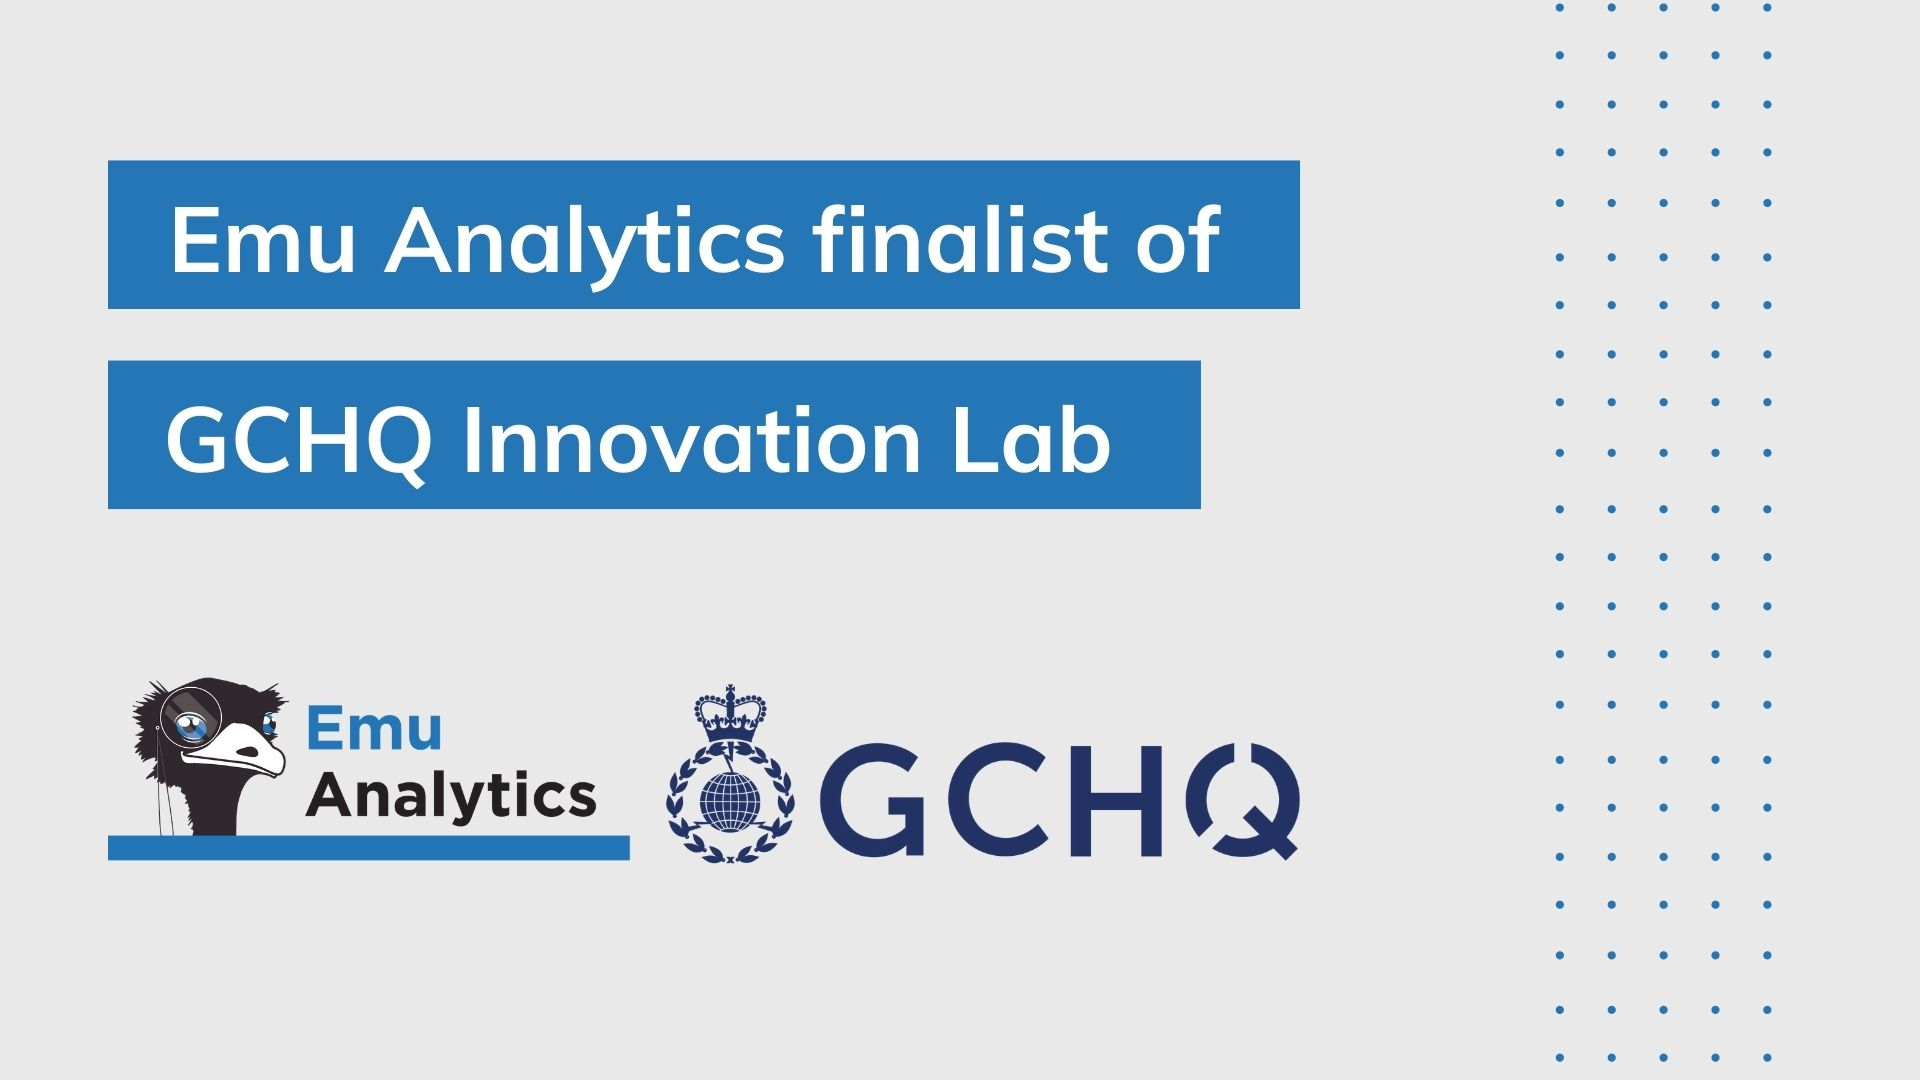 Innovation journey with GCHQ culminates in Accelerator Demo Day